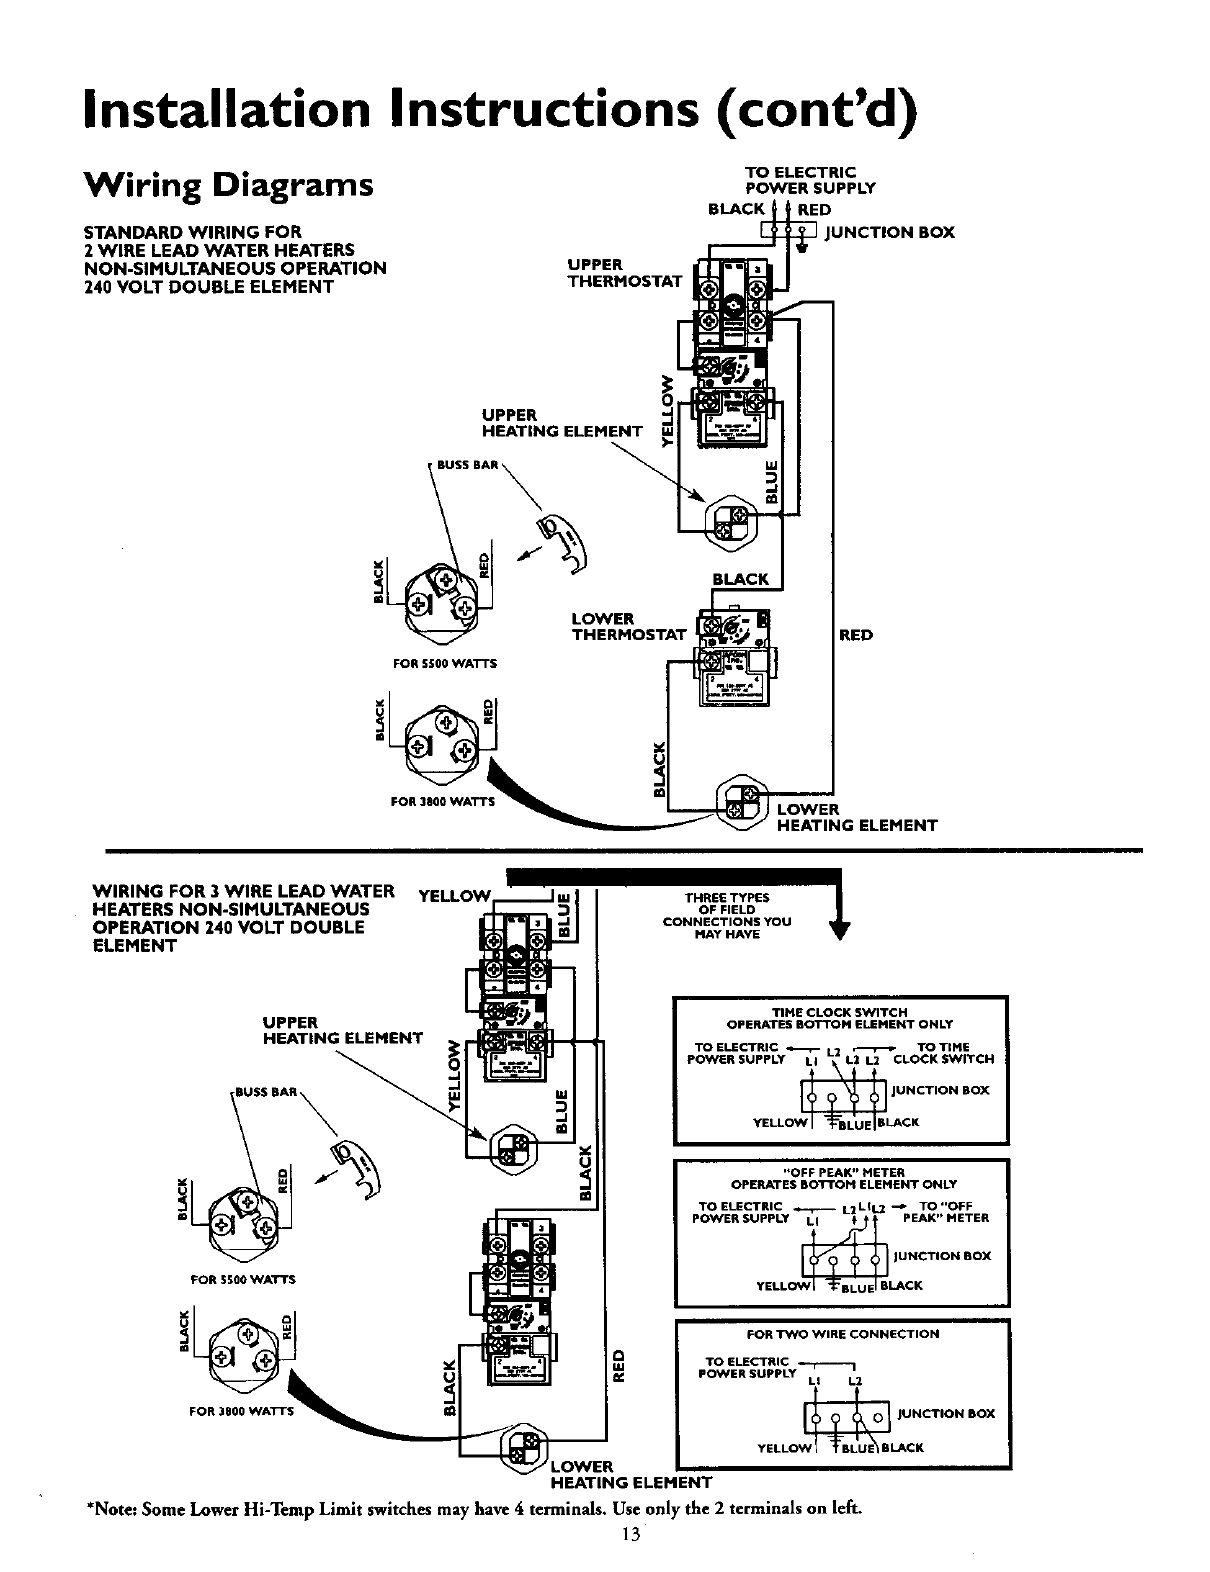 2wire junction box wiring page 13 of kenmore water heater 153 316455 user guide  page 13 of kenmore water heater 153 316455 user guide